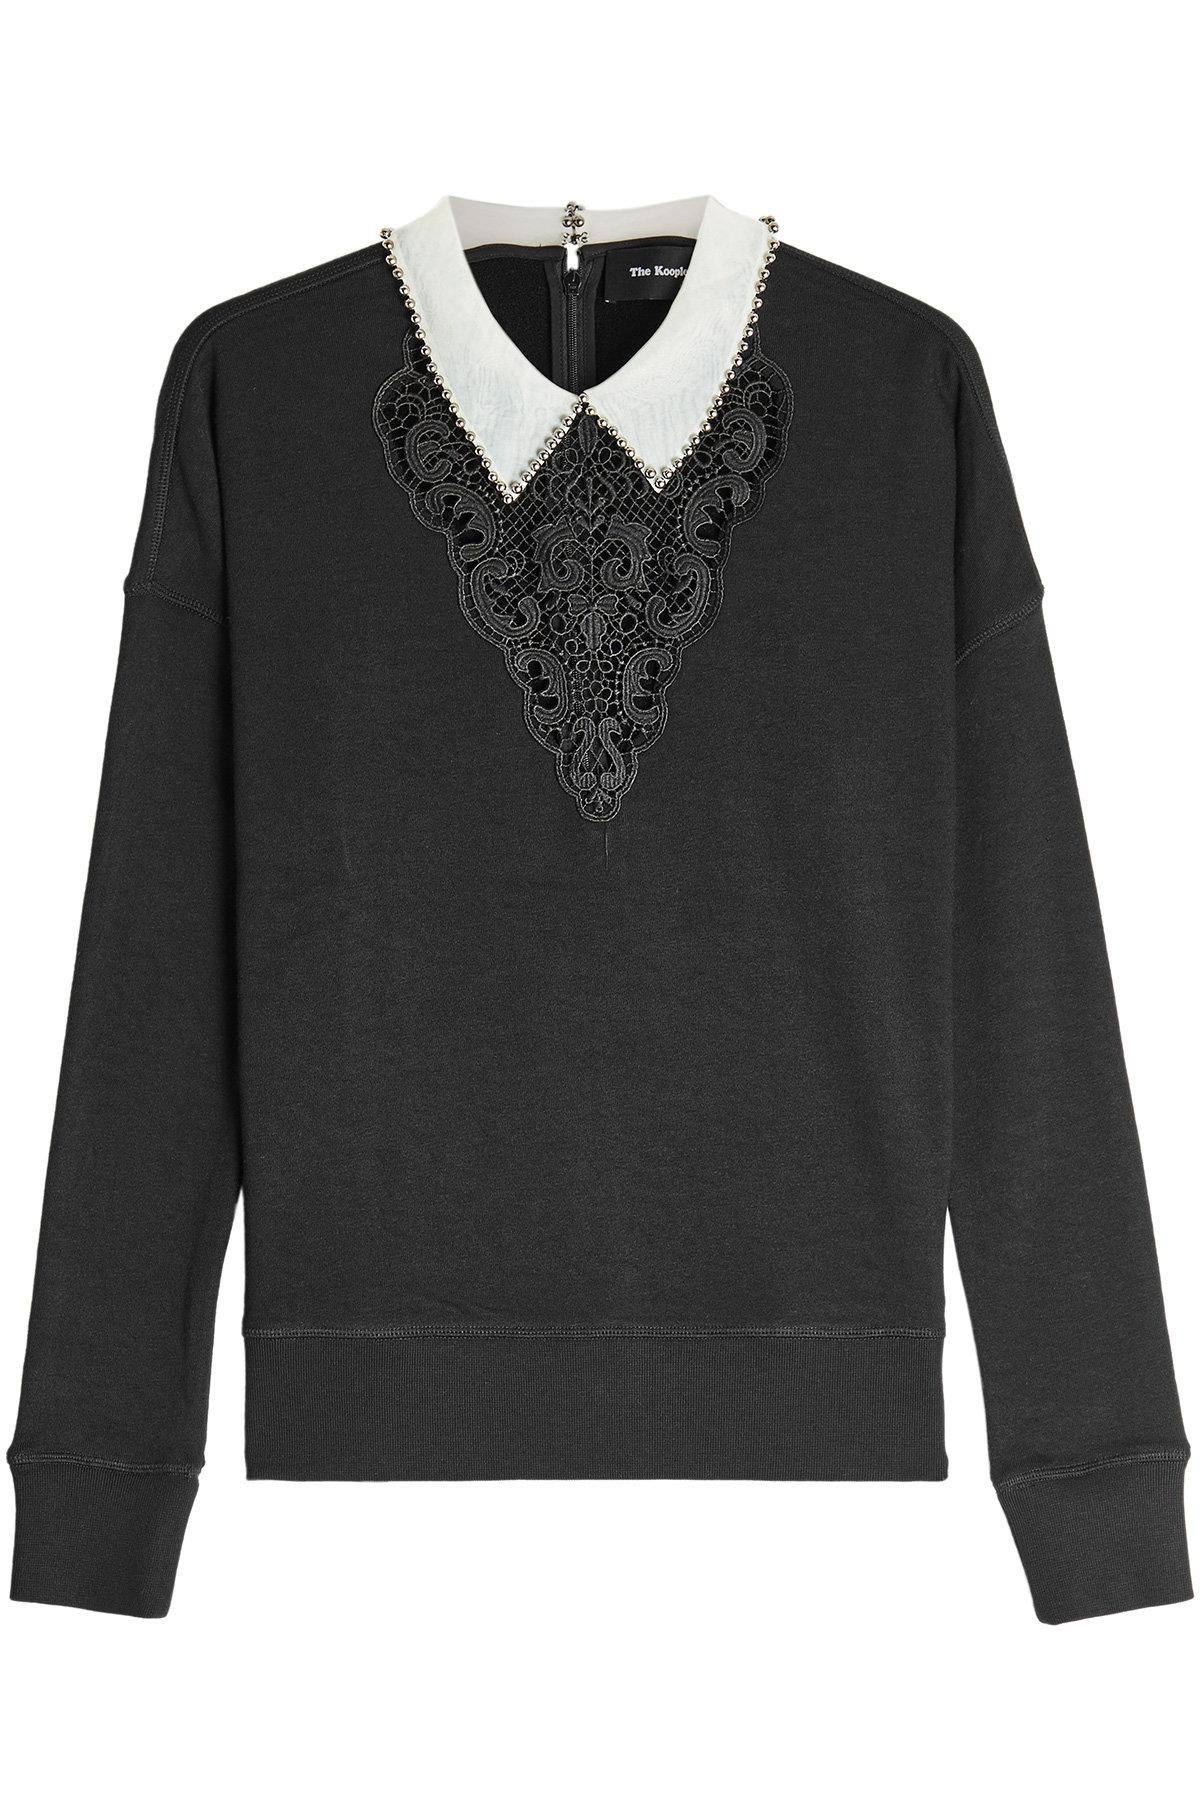 The Kooples Sweatshirt With Lace And Embellishments In Black